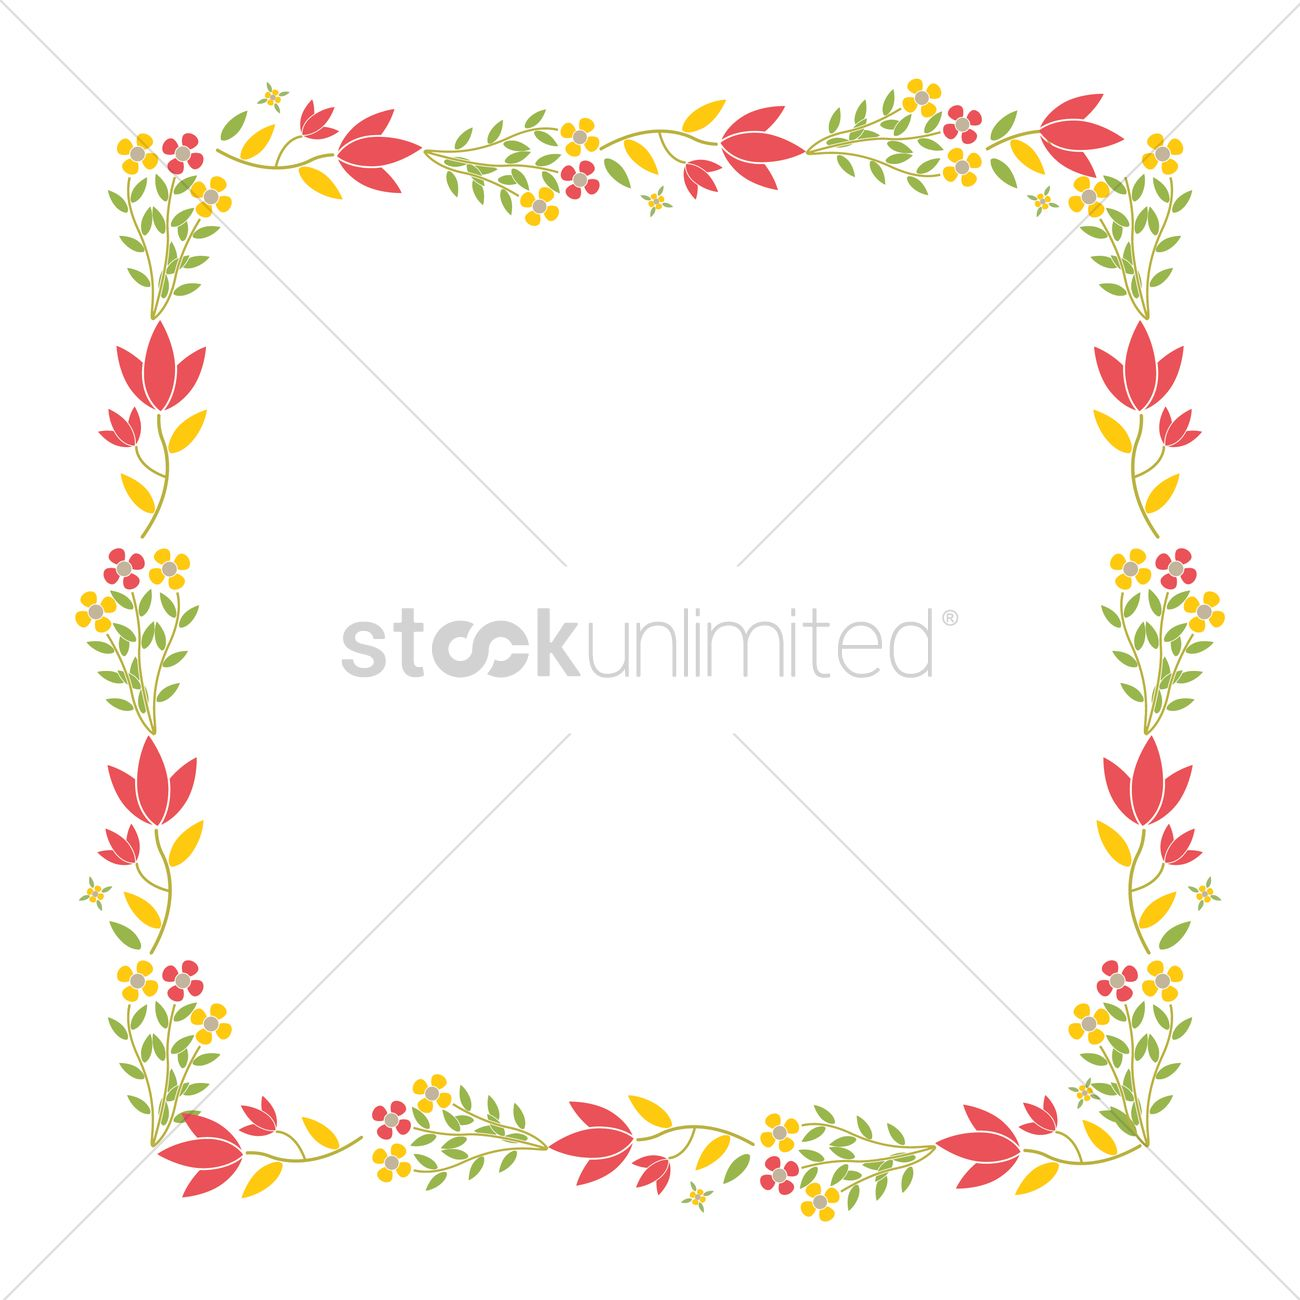 Flower border design Vector Image - 1968692 | StockUnlimited